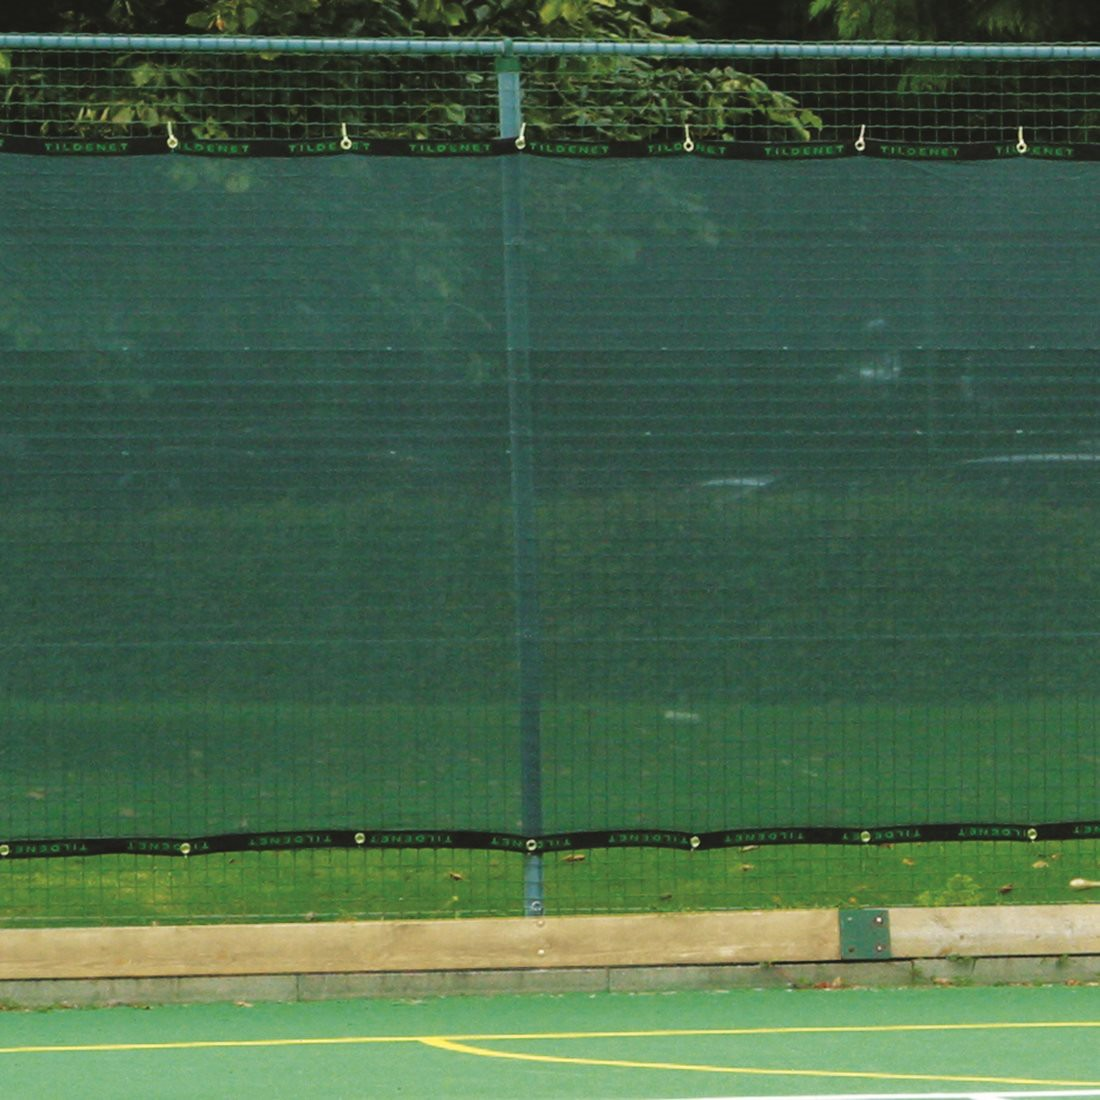 Premium Tennis Court Privacy Windbreak Netting Surround Screen